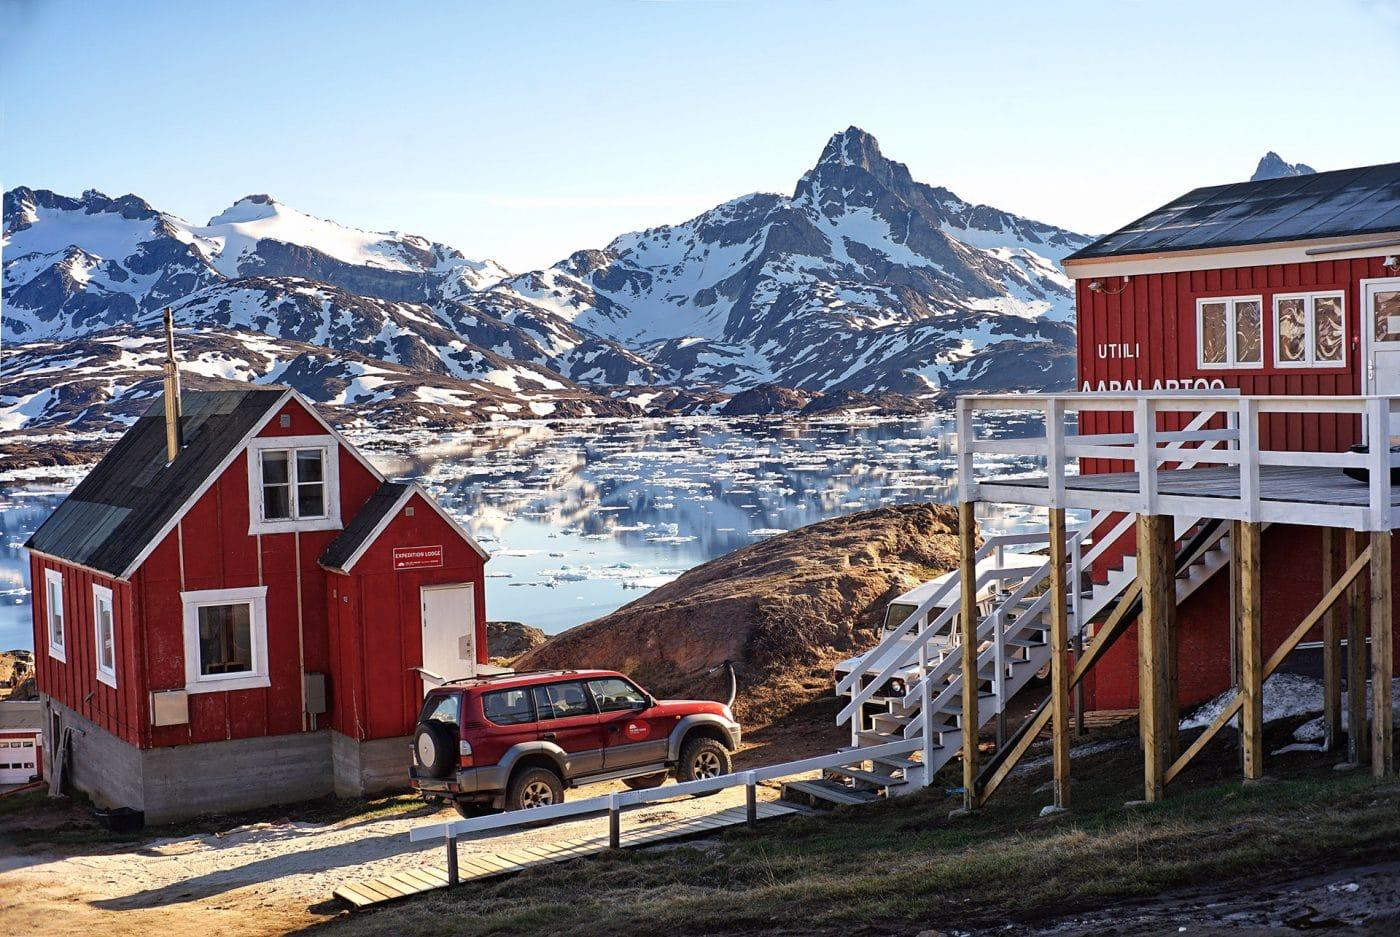 The Red House in front of the Kong Oscar Fjord. Photo by Ulrike Fischer